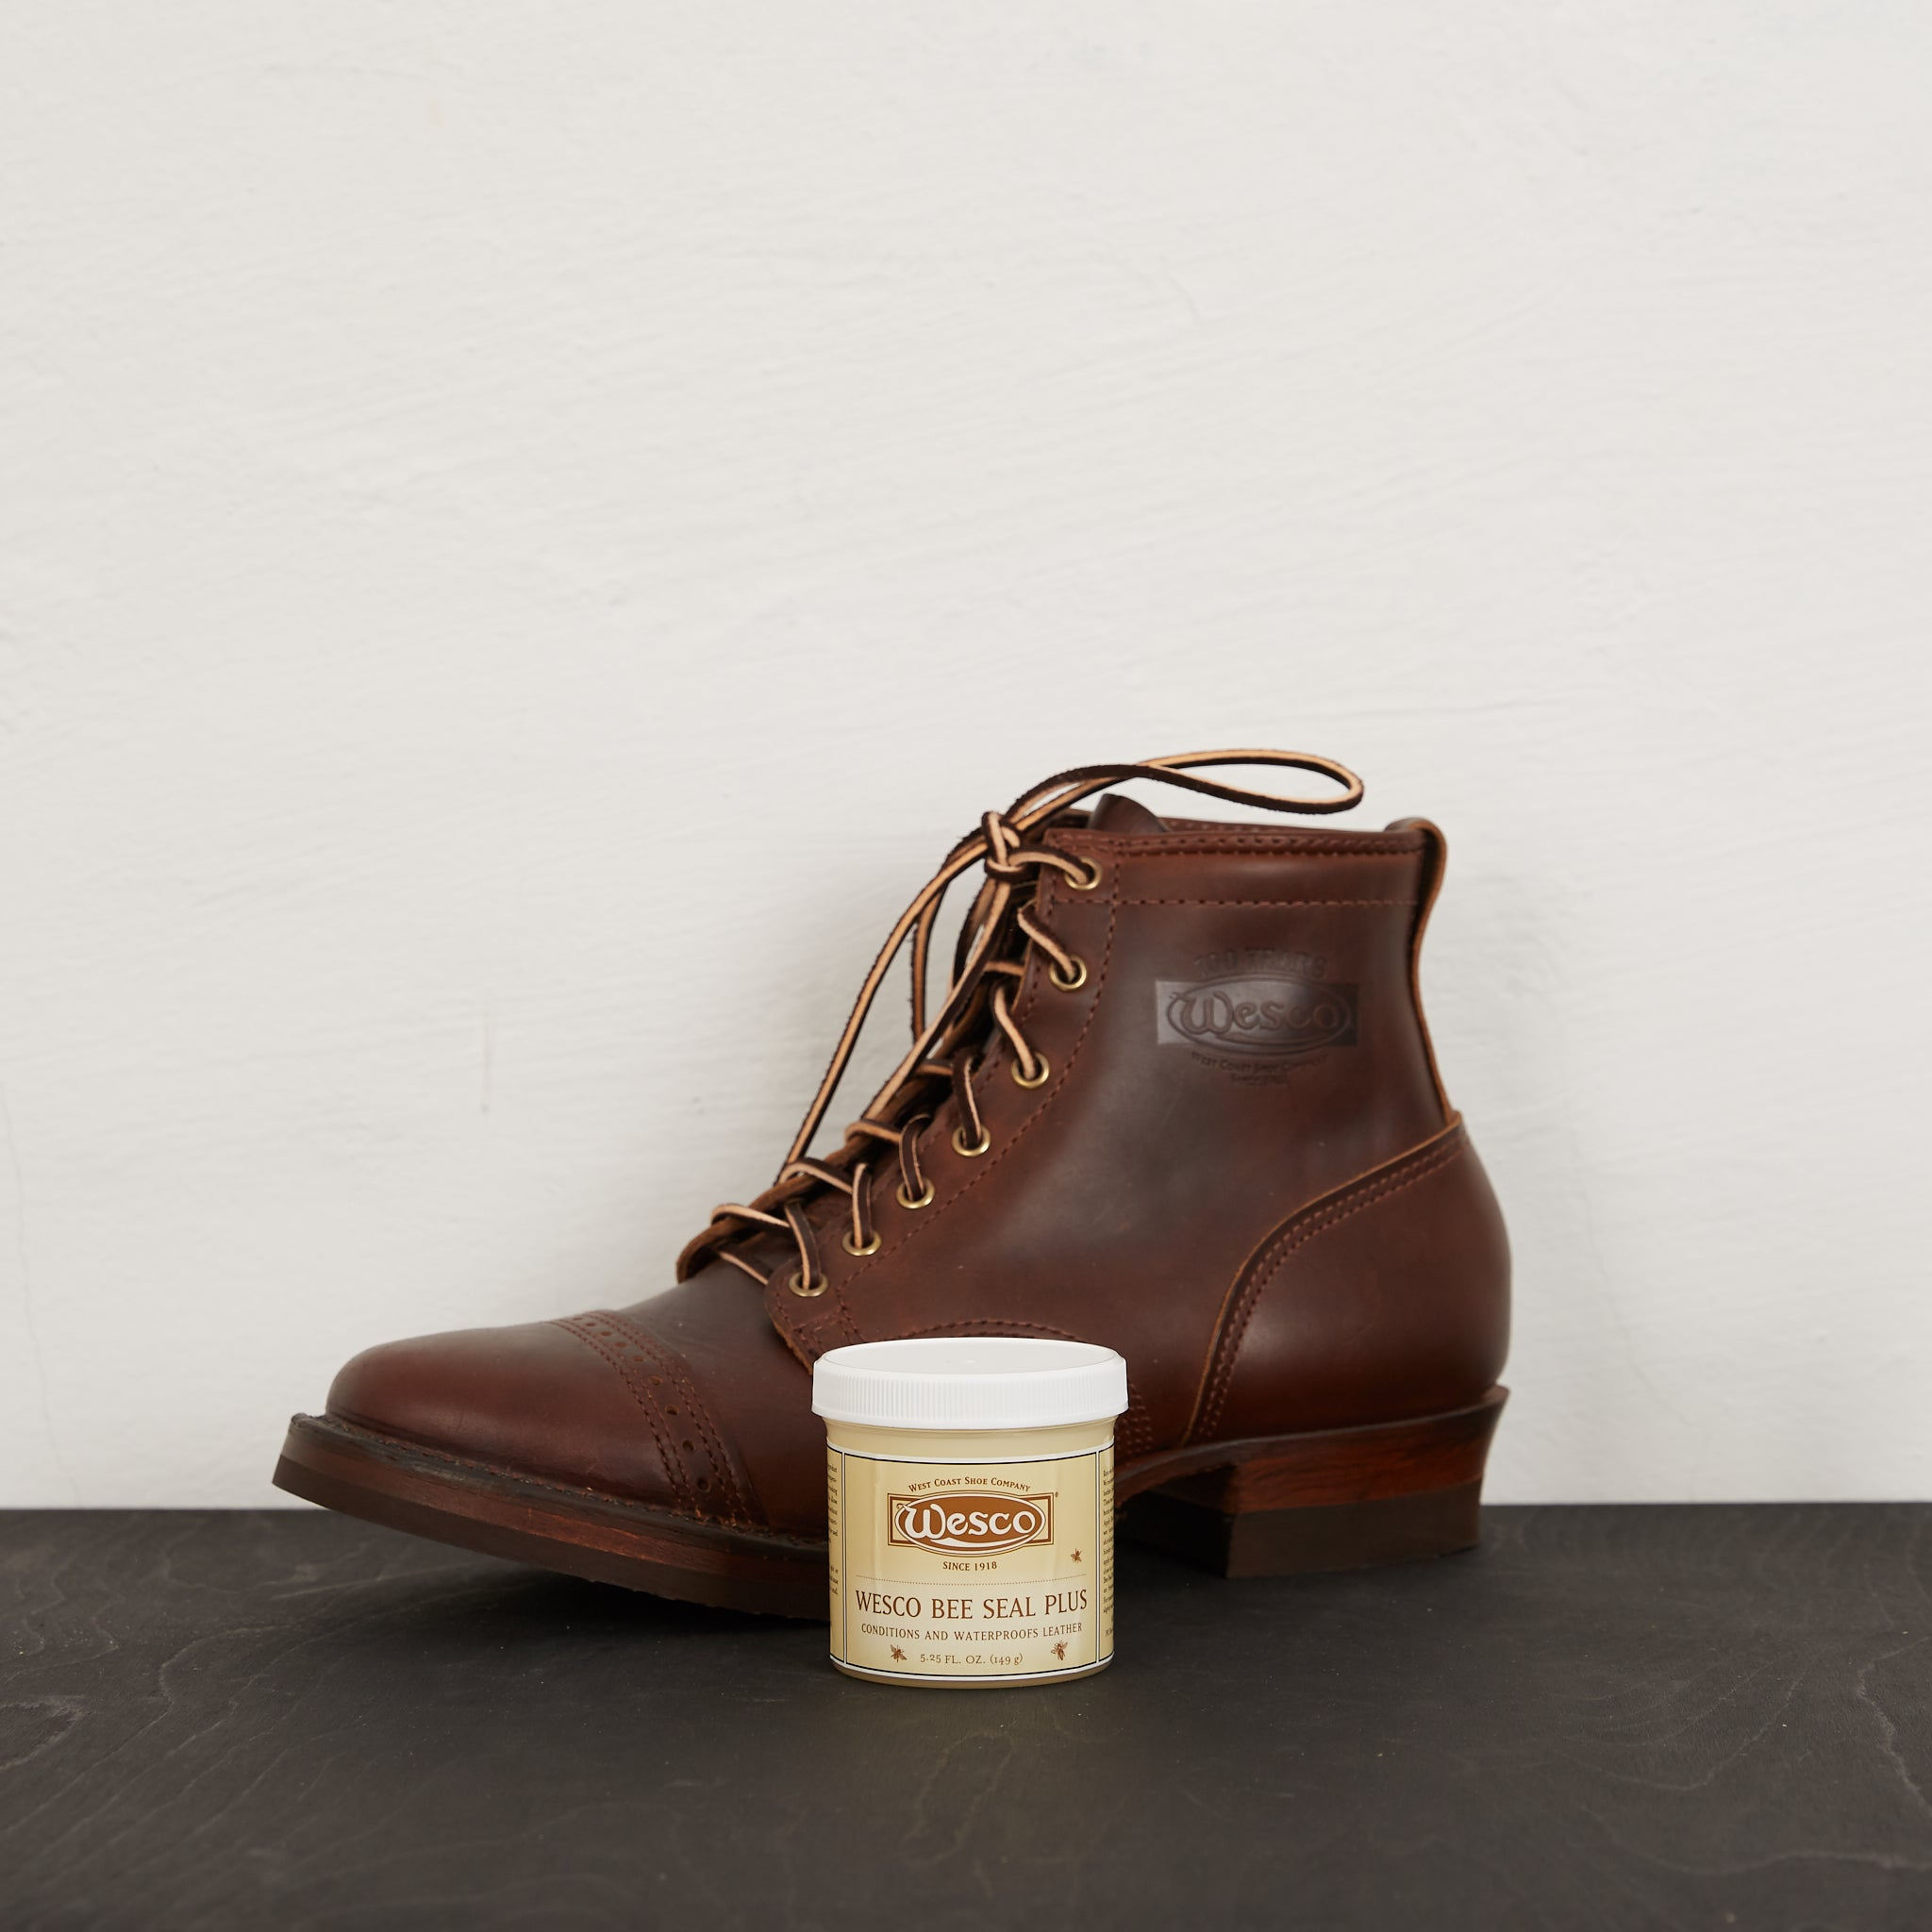 Wesco Leather Boot Dressing Bee Seal Plus